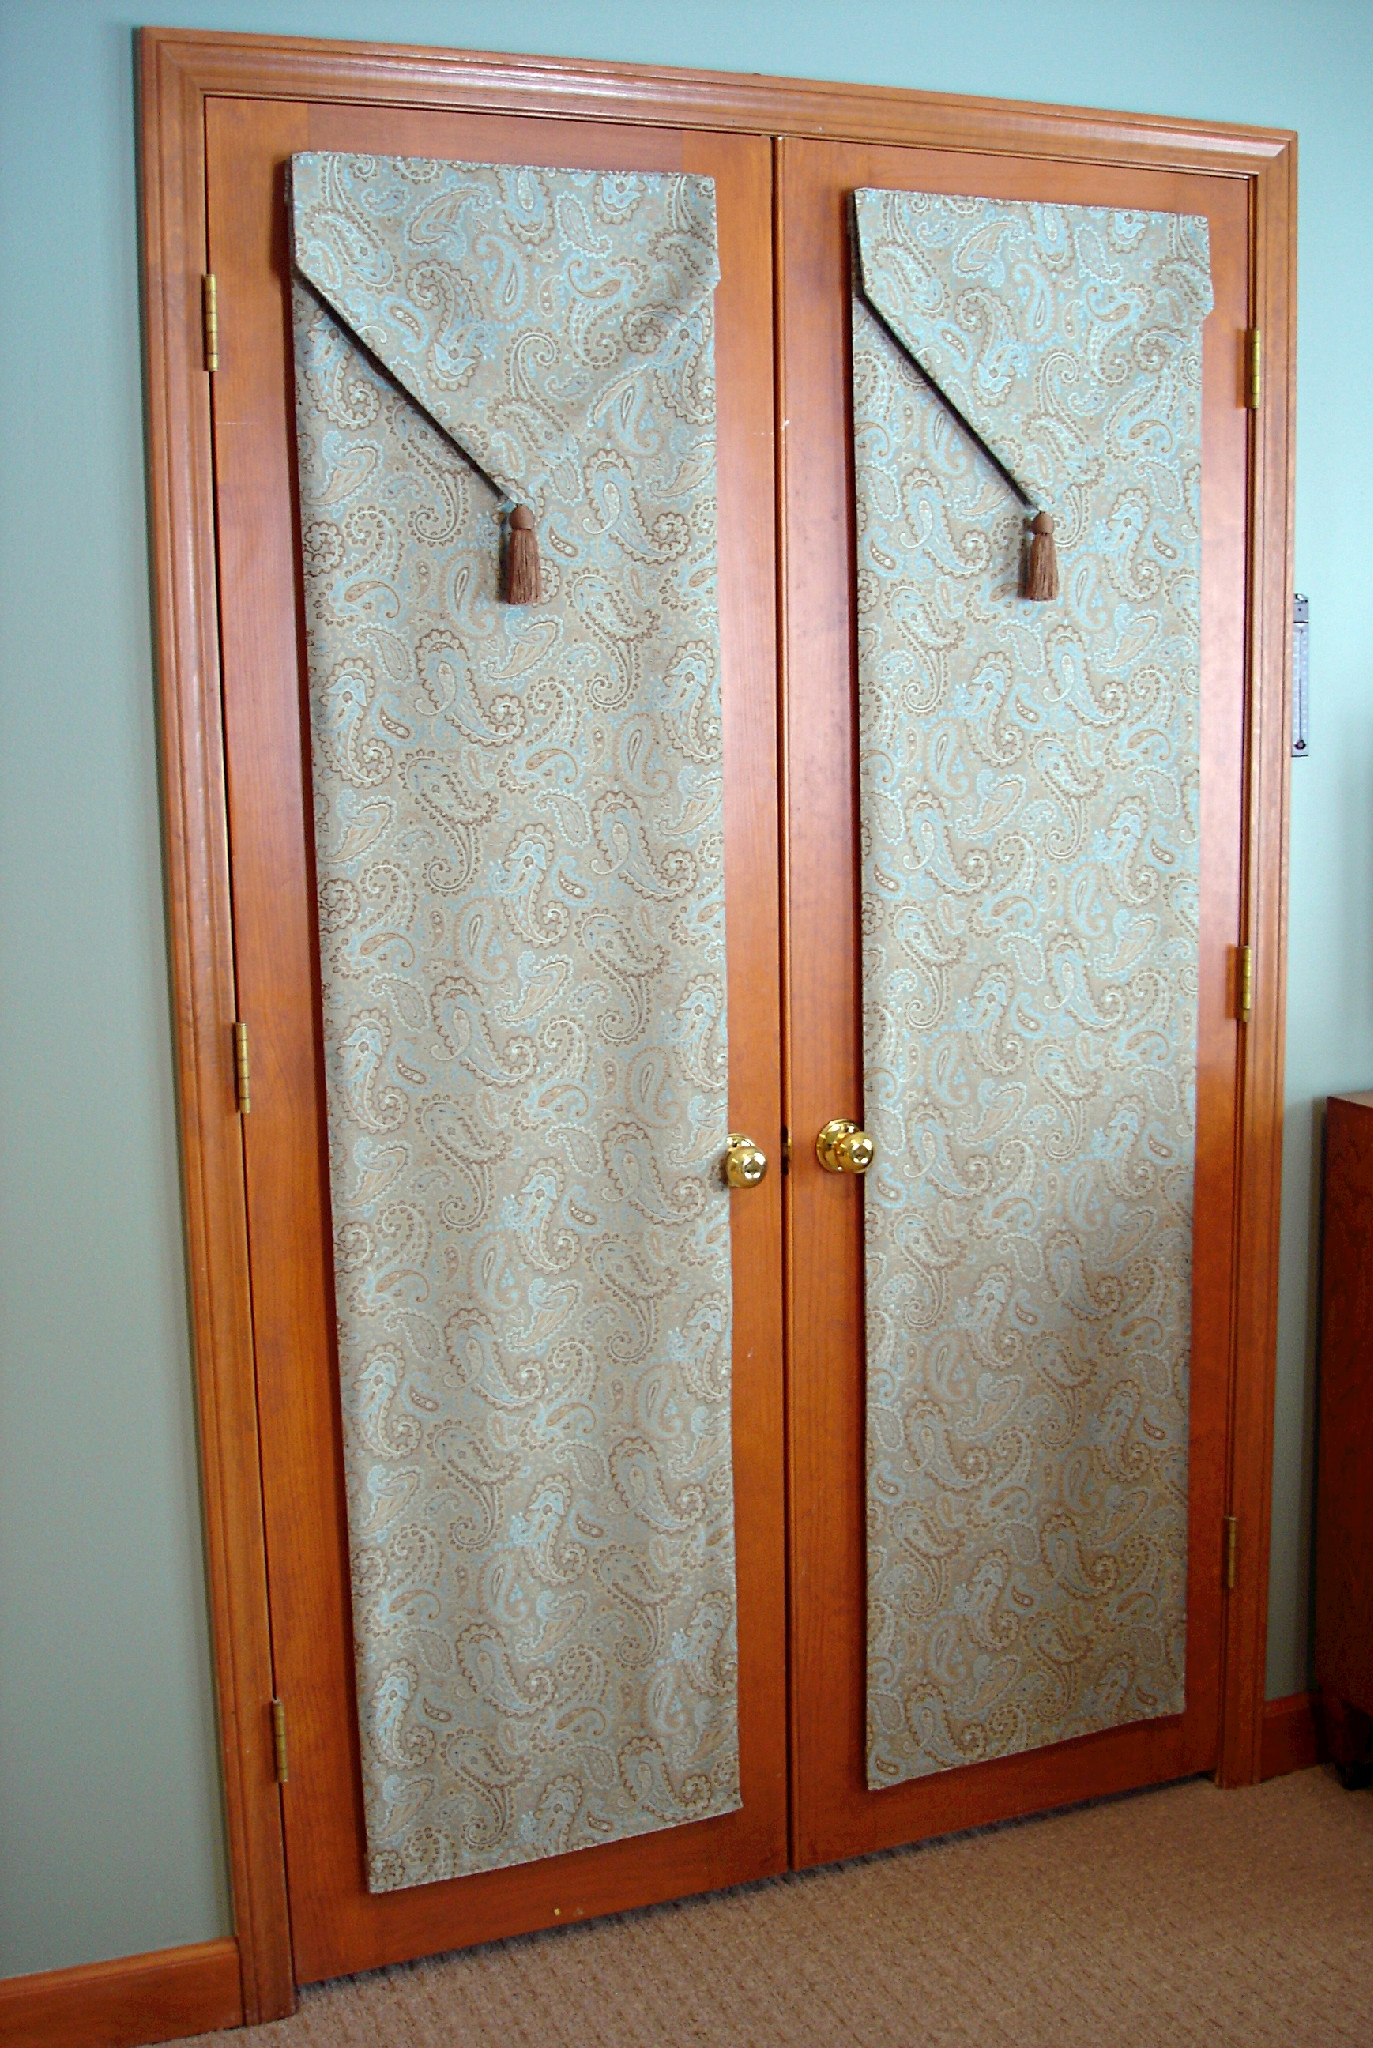 Long Brown Fabric Curtains For White Wooden Door Atlanta Online Regarding Fabric Doorway Curtains (Image 11 of 15)